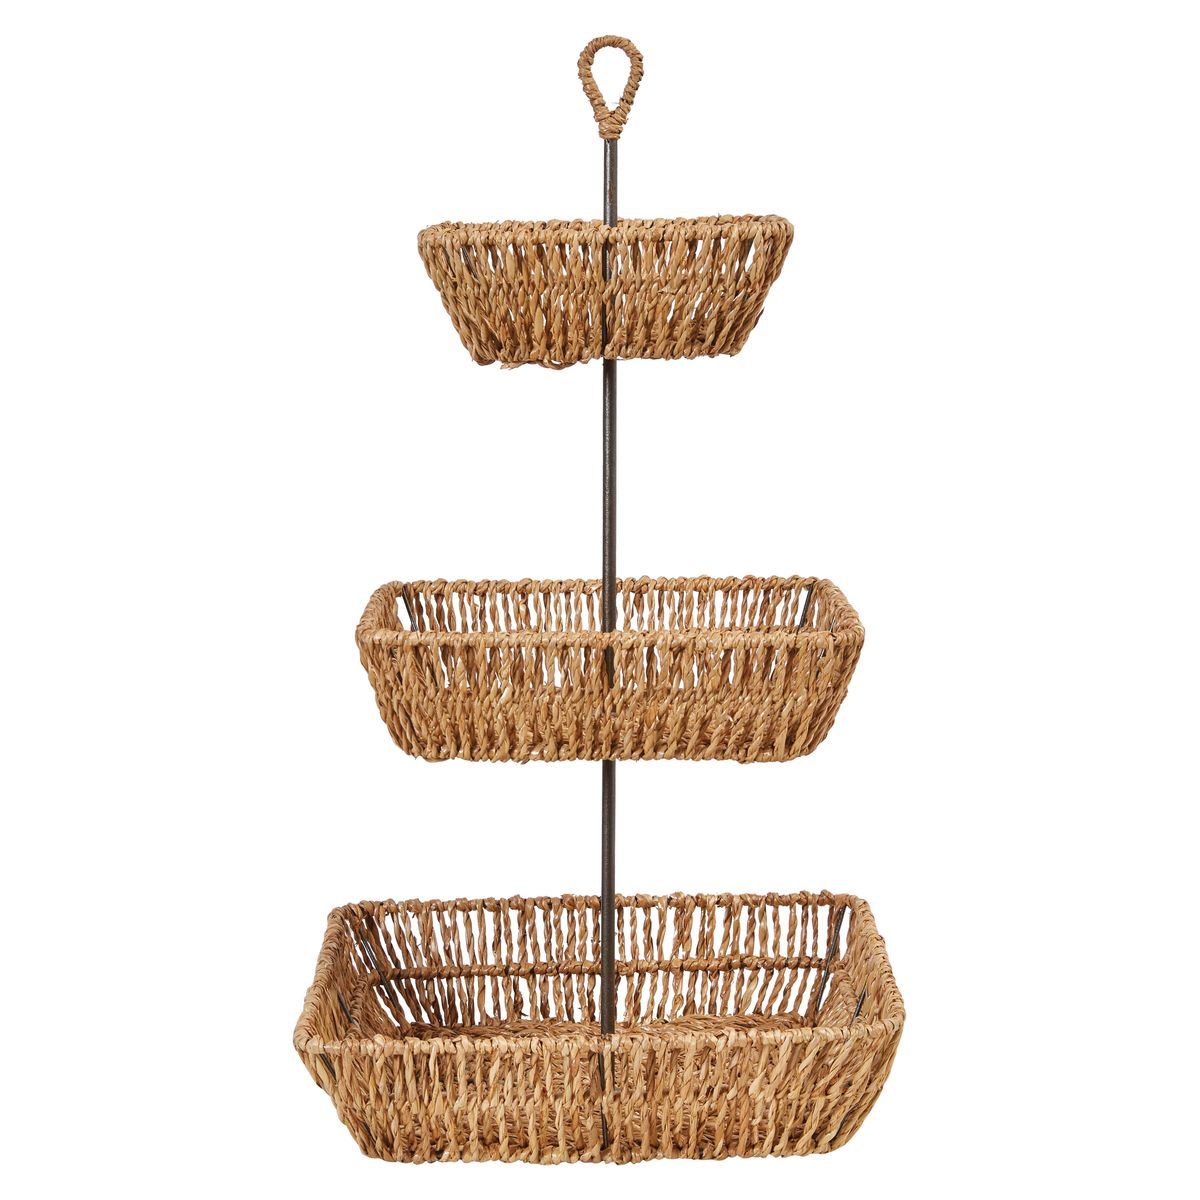 Decorative Hand-Woven Seagrass 3-Tier Tray with Handle